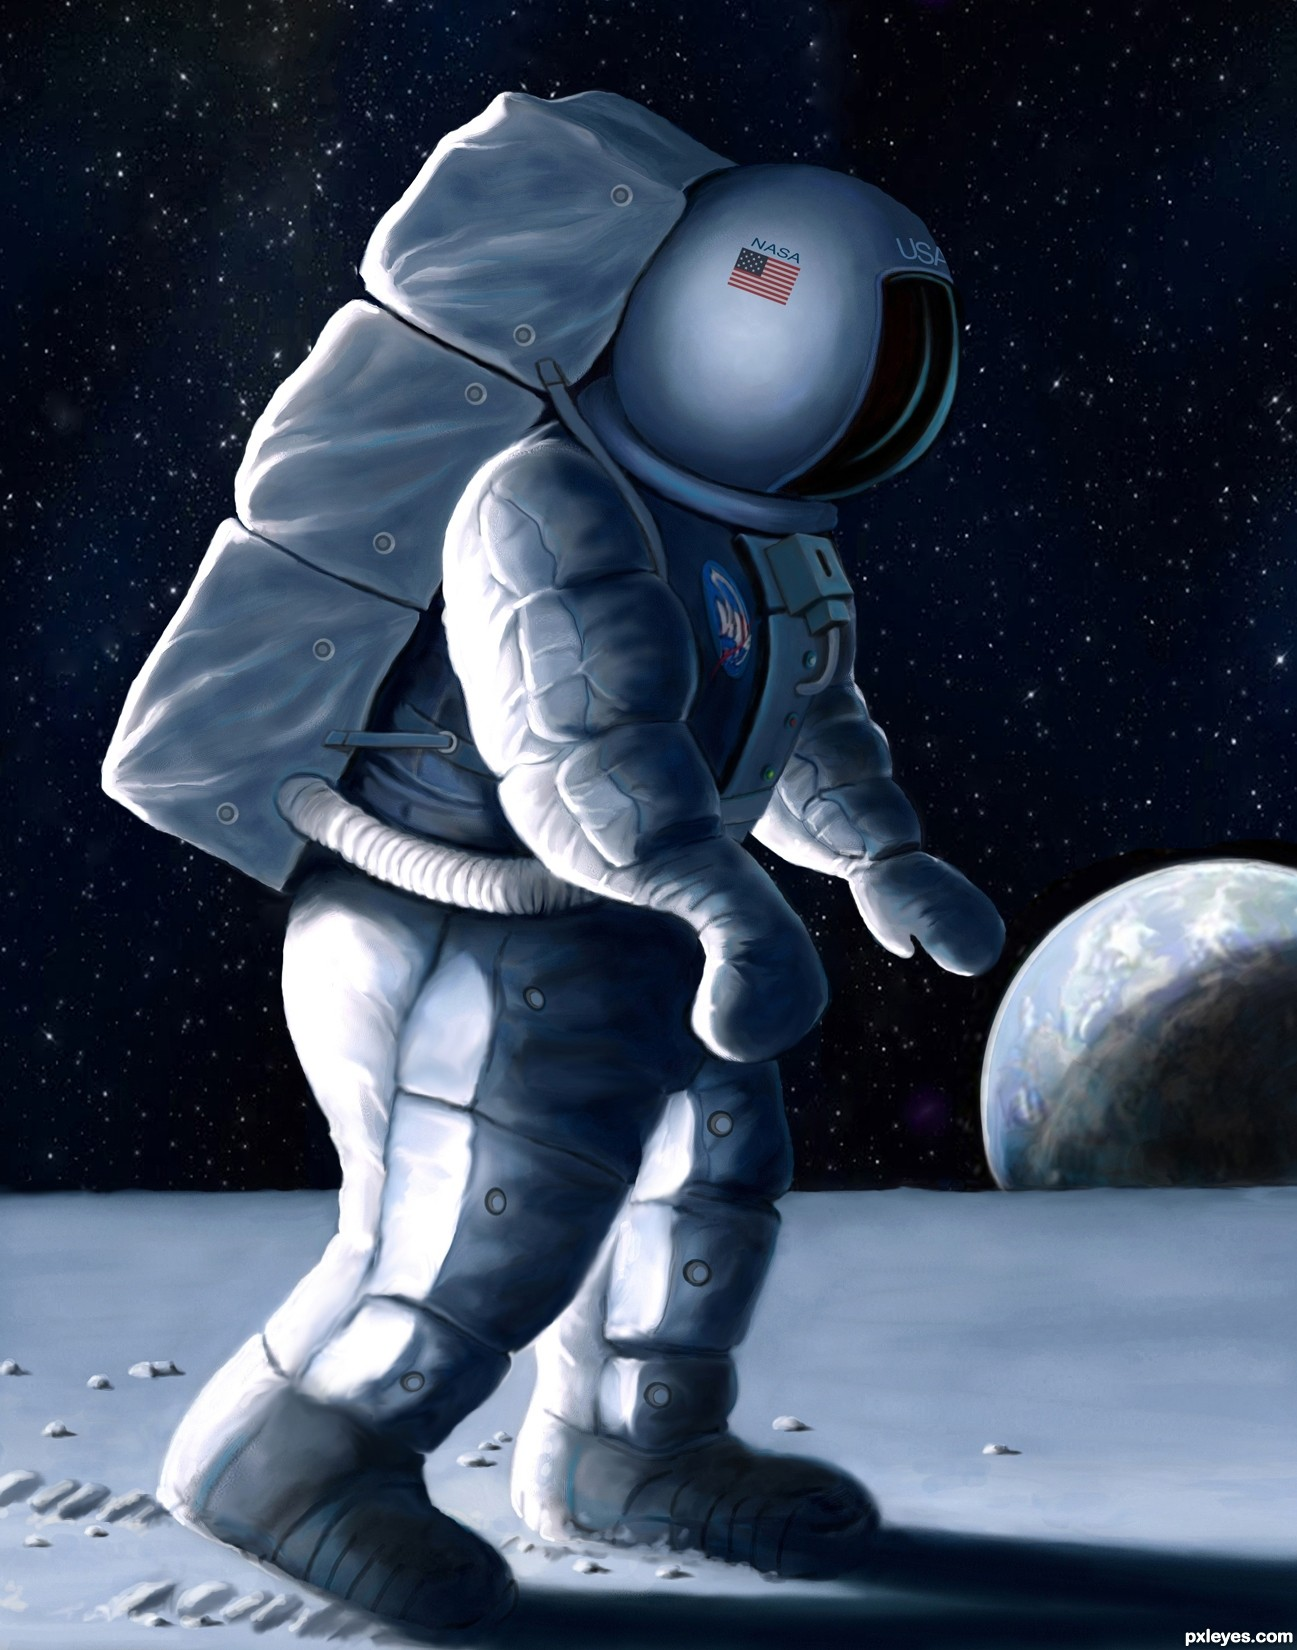 1297x1650 One Small Step For Man Picture, By Glockman For Man On Moon